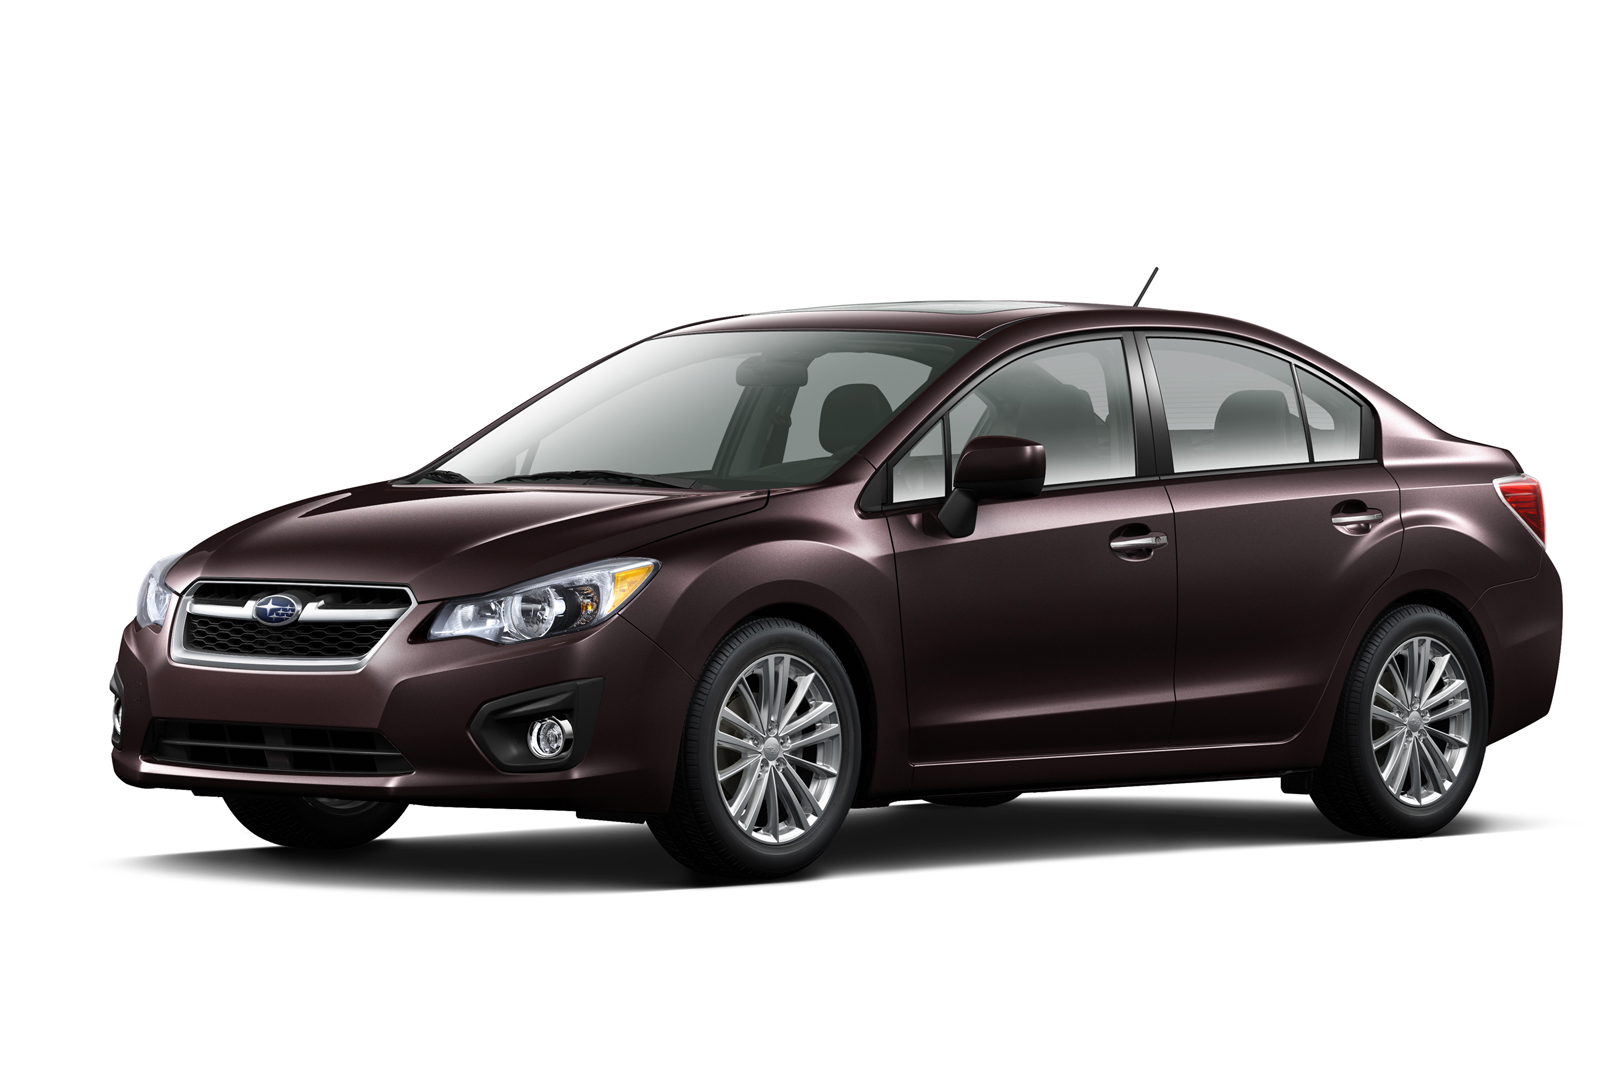 2012 Subaru Impreza 4Door NEW 2012 IMPREZA, STARTS AT $18,245 INTRODUCED FOR US MARKET